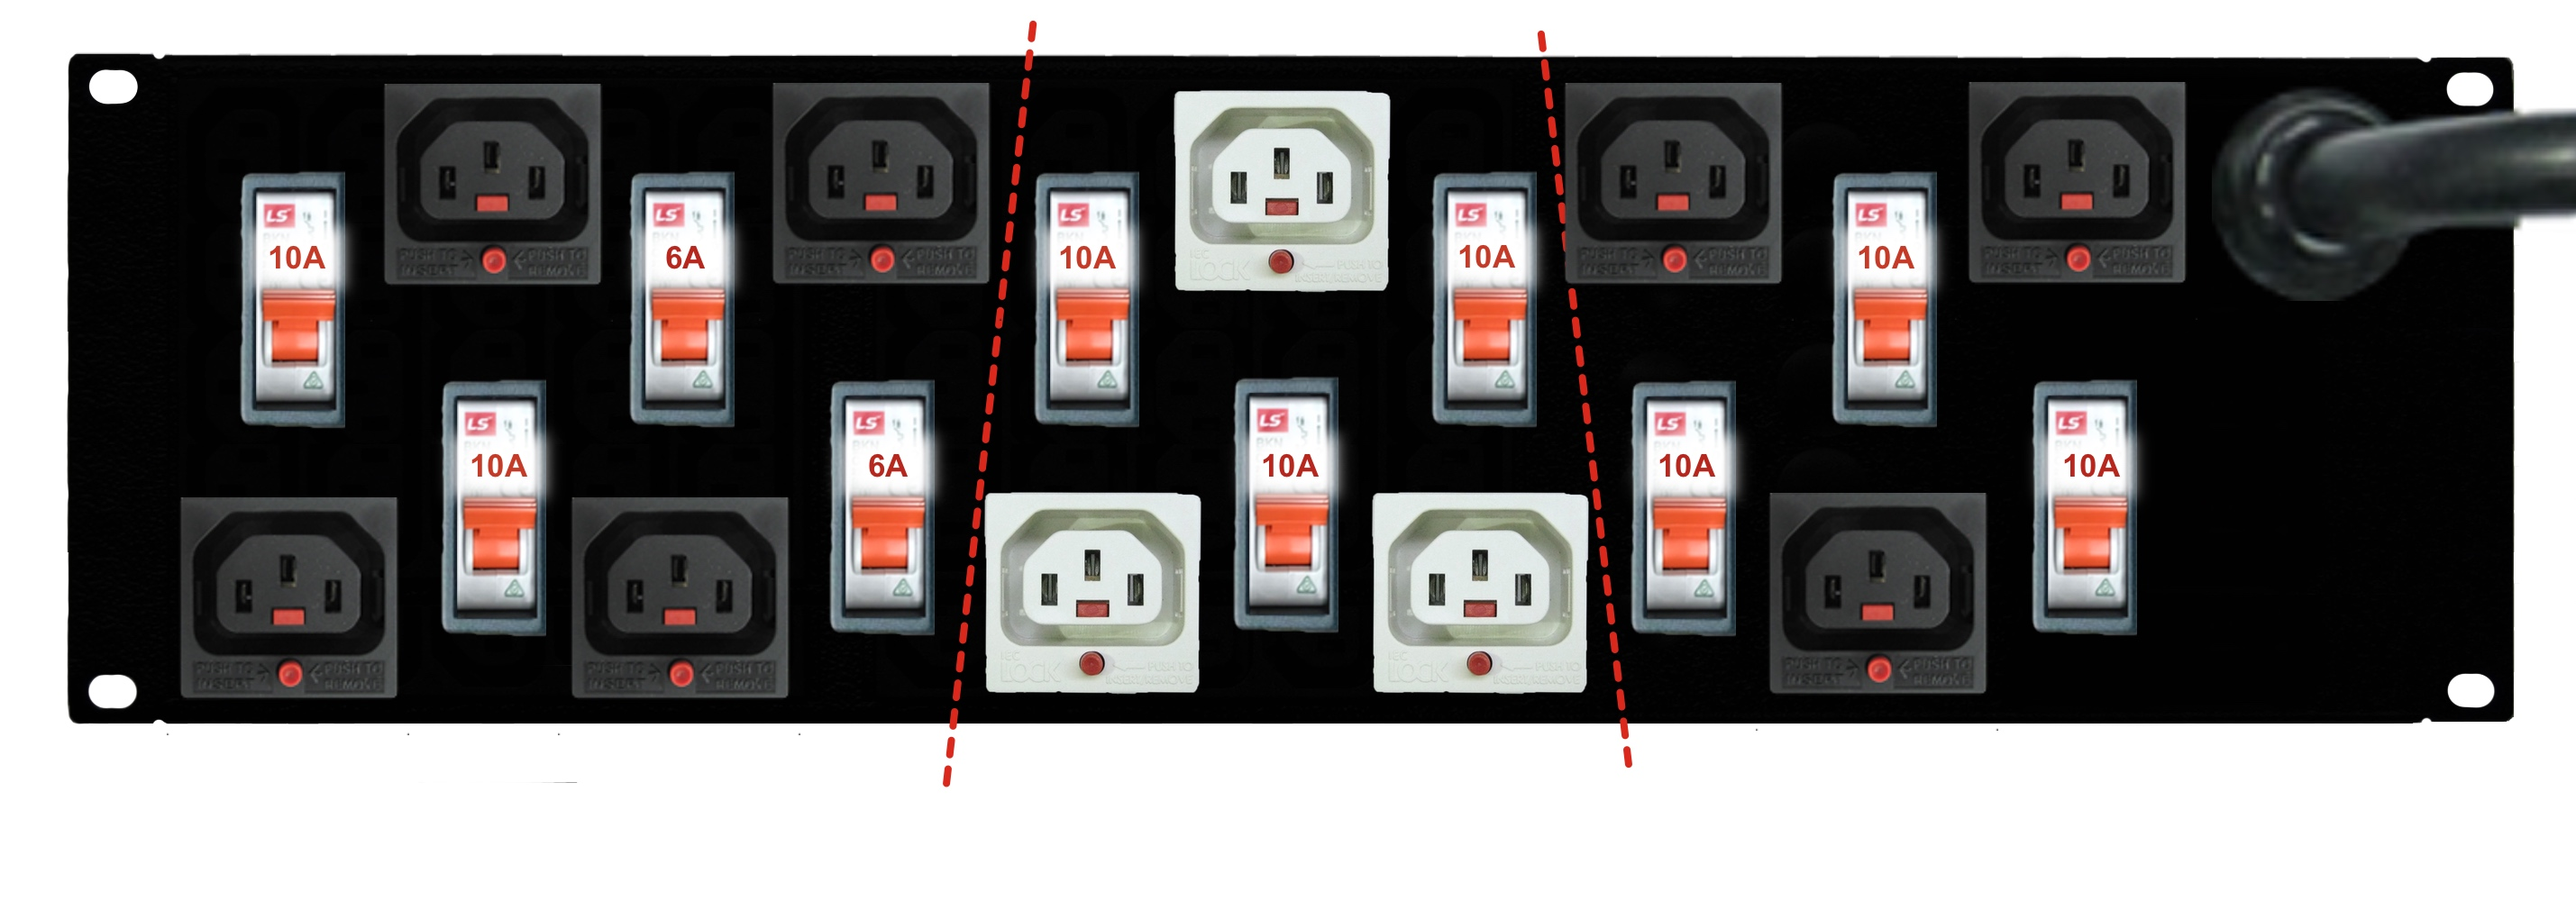 10x IEC-Lock C13 outlets with individual CB